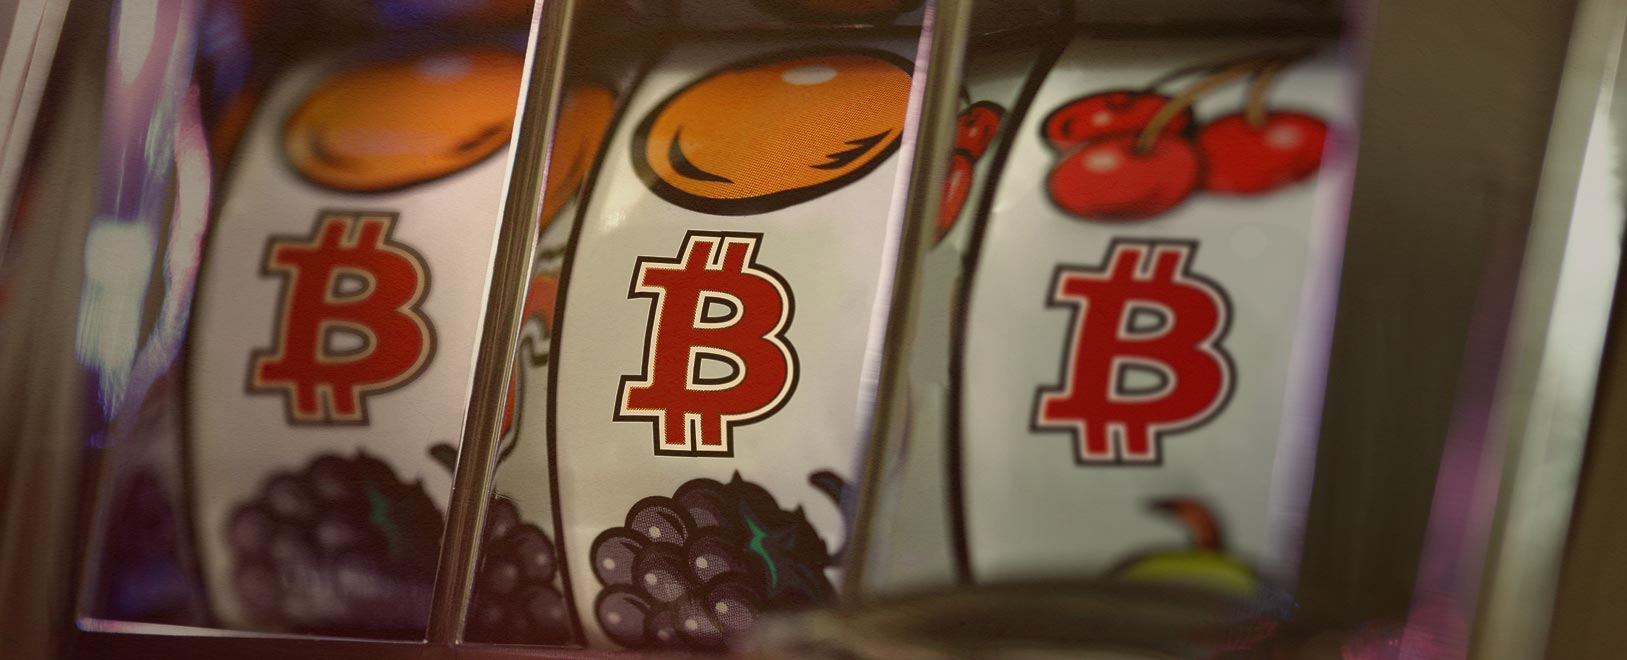 Use Bitcoin for New Slots at Ignition